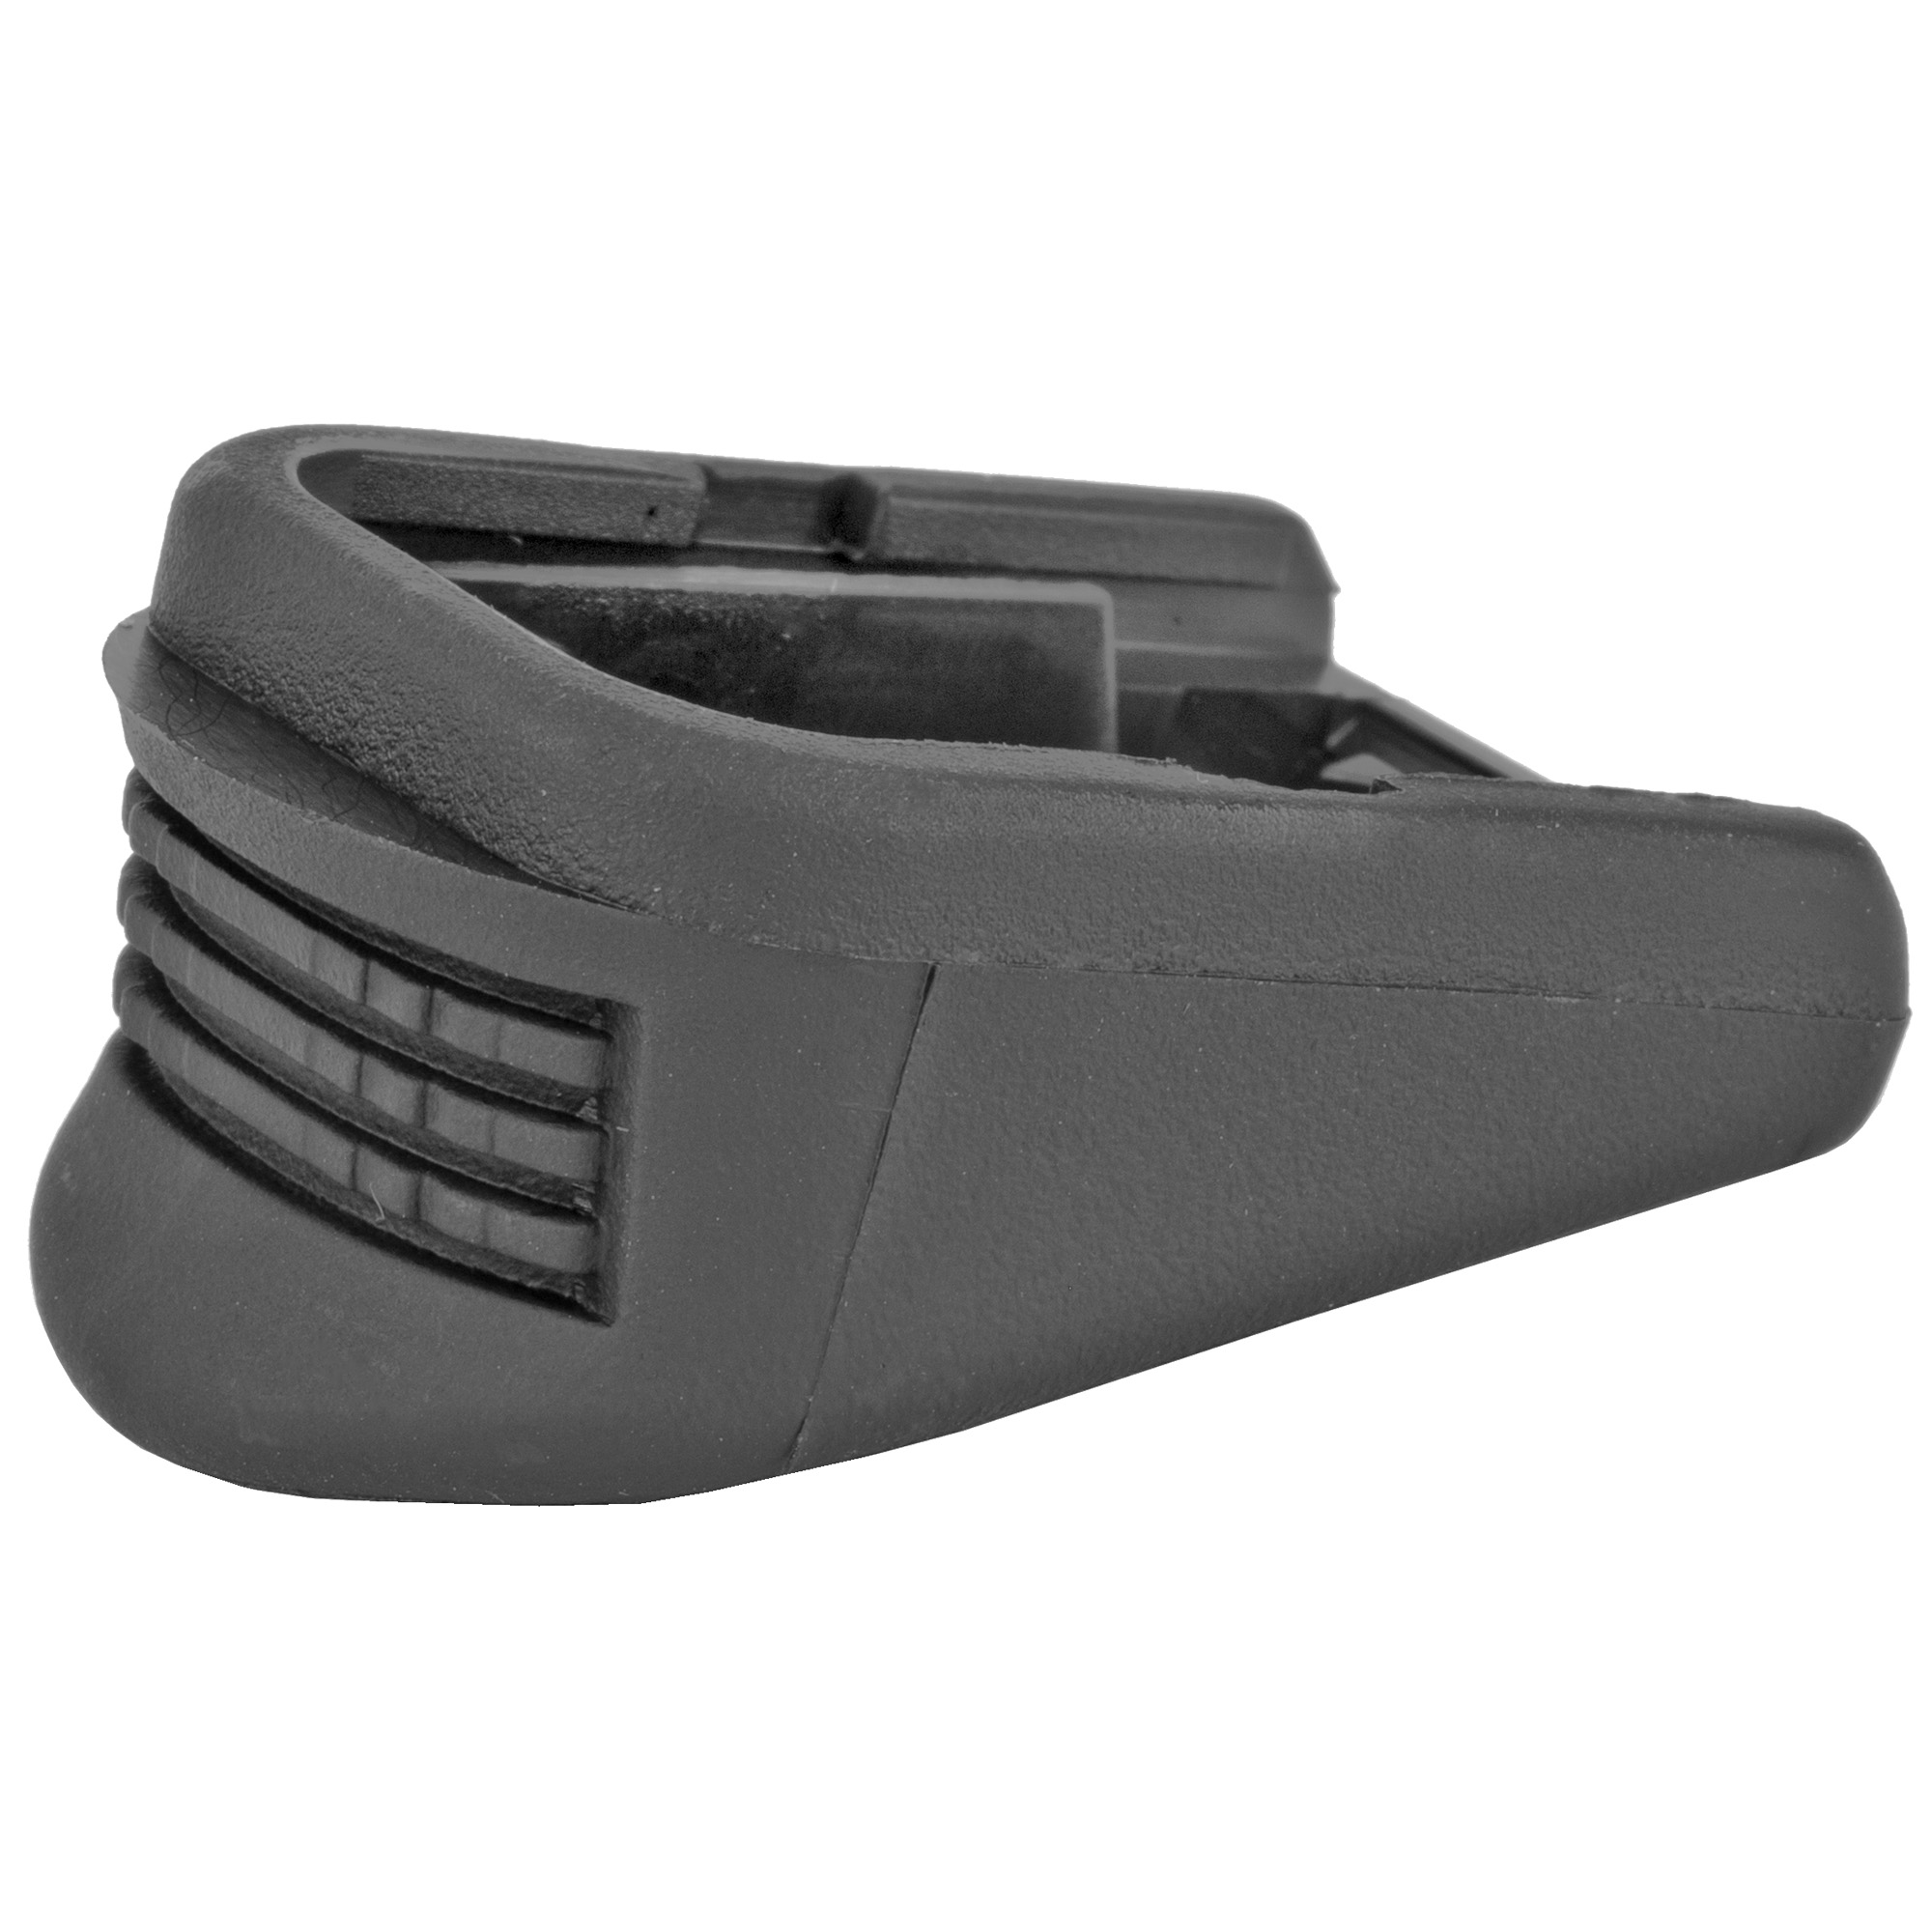 """These units replace the magazine base plate and internal floor plate. They will add two rounds to the Glock M26"""" one round to the Glock M27 and M33 and no rounds to the Glock M39. These units will add 5/8"""" additional length for better control and comfort."""